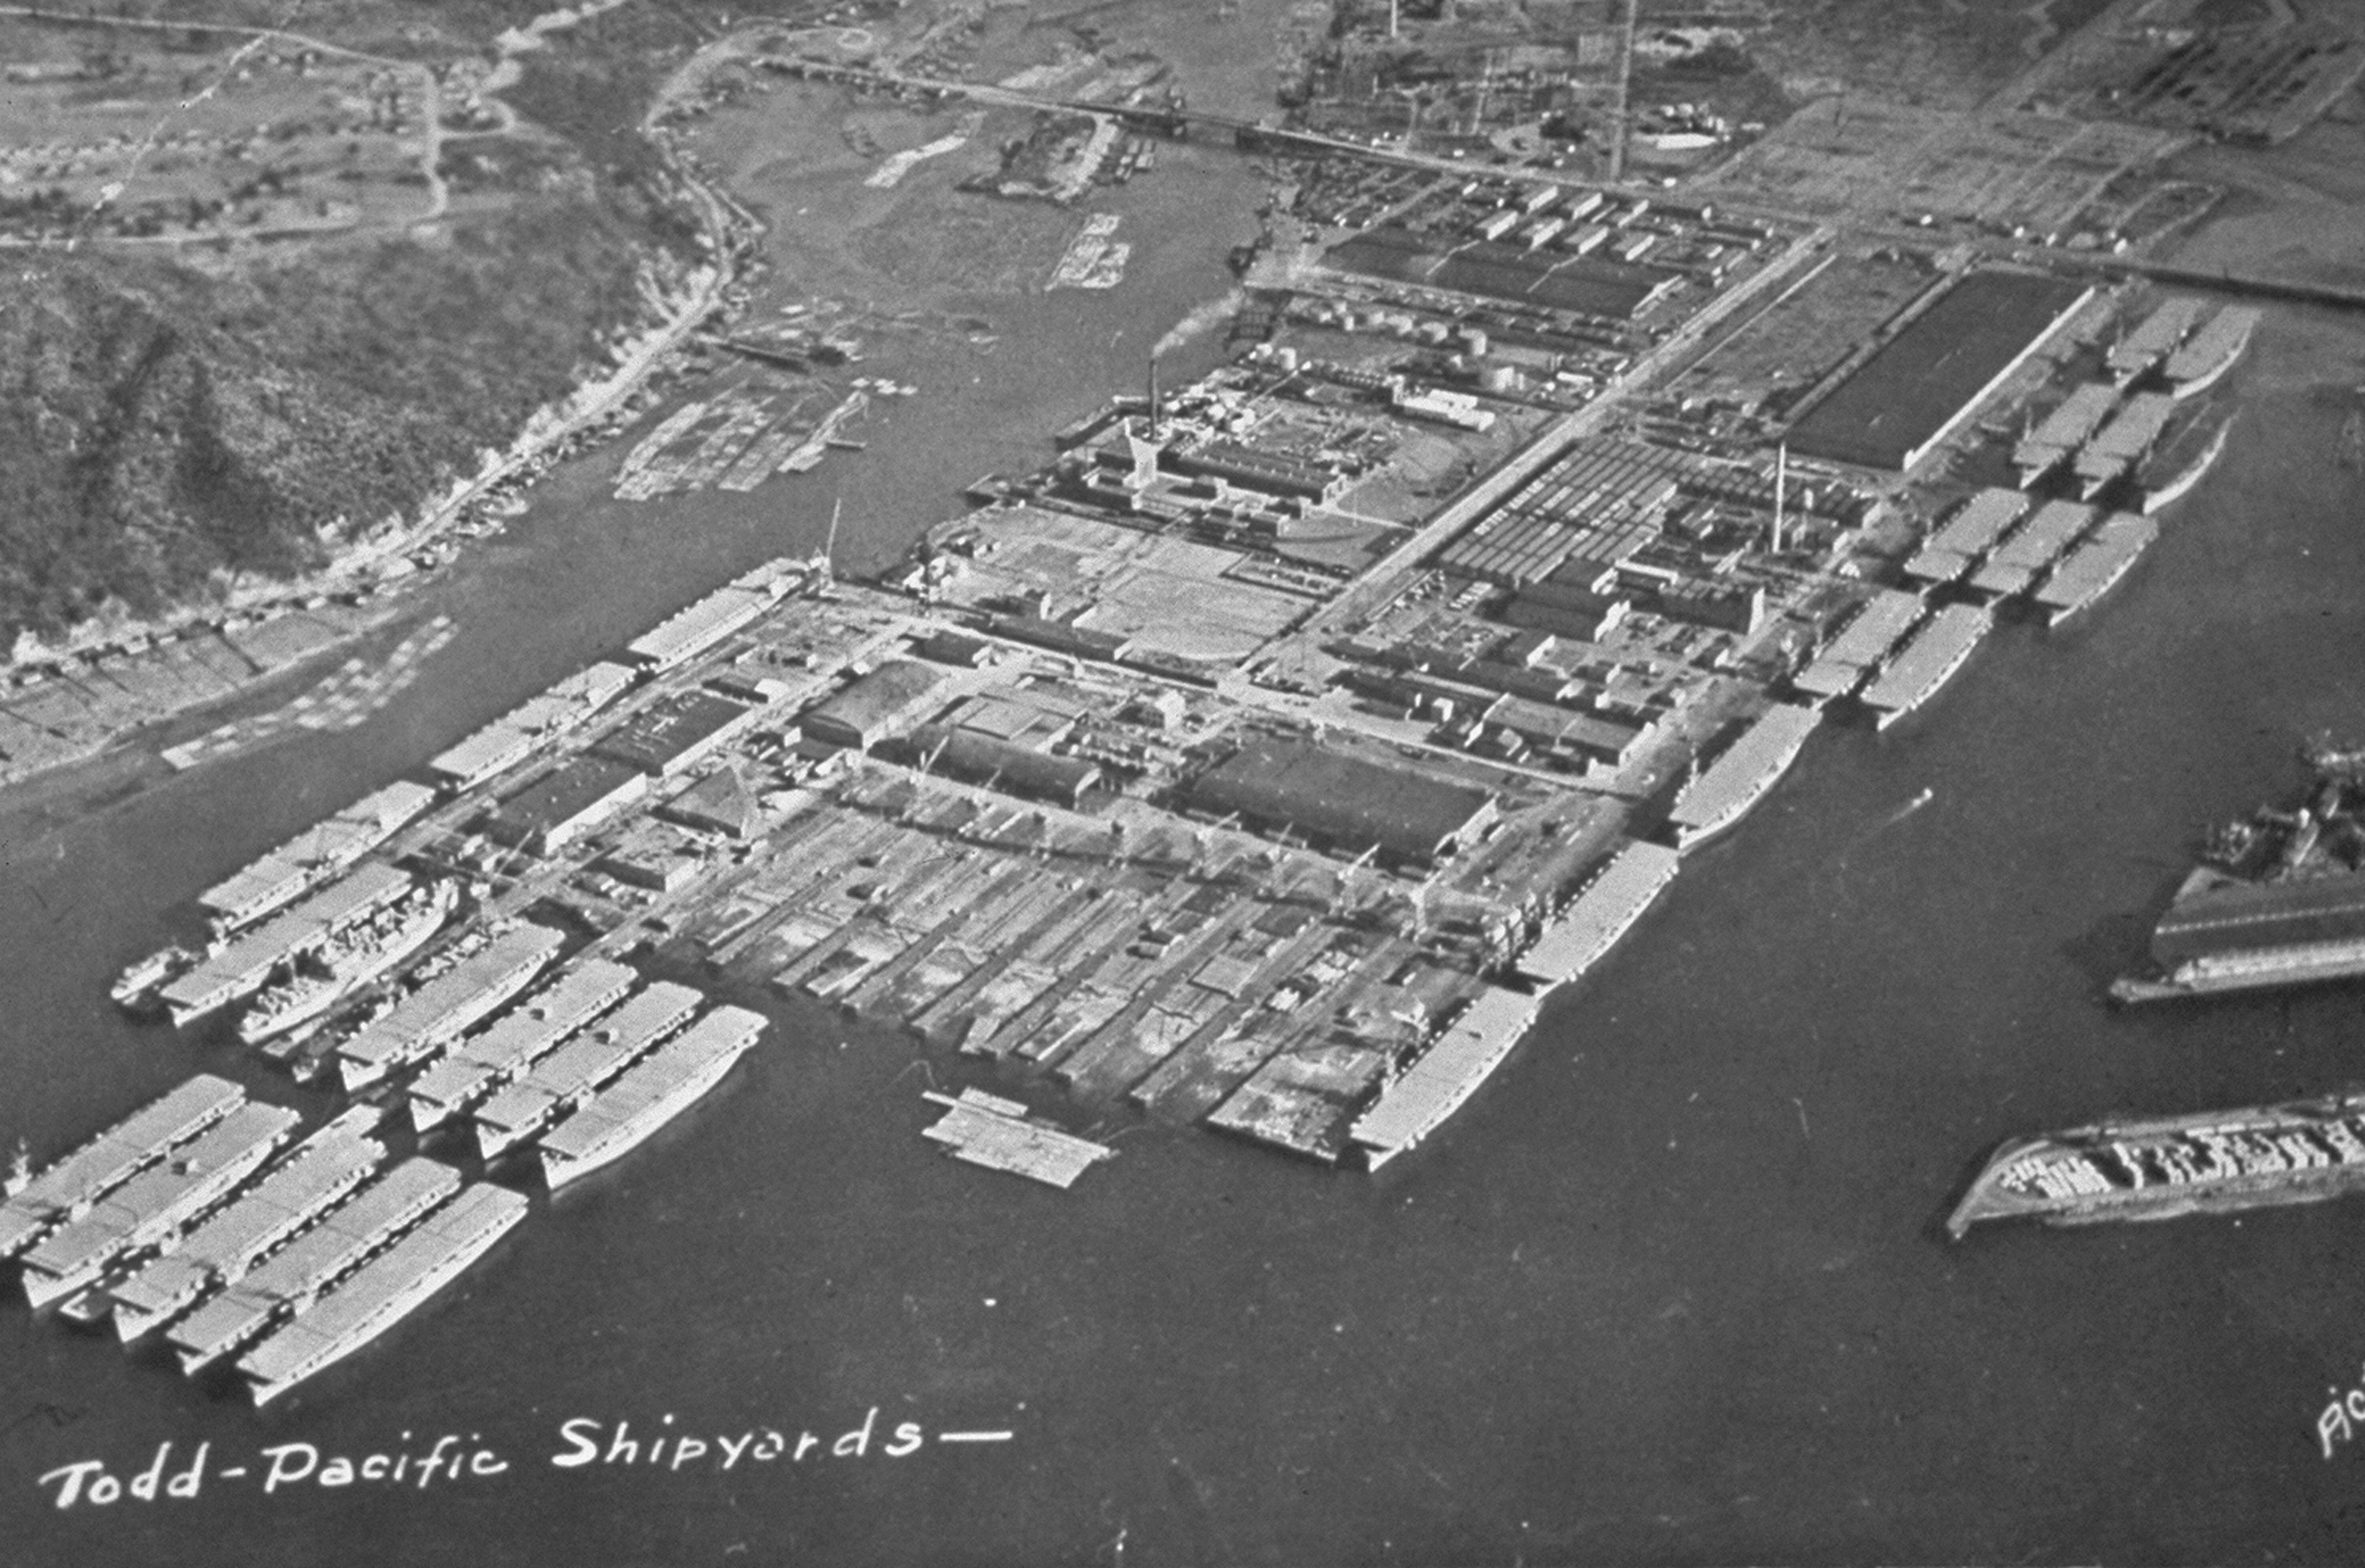 historical aerial photo of todd pacific shipyards